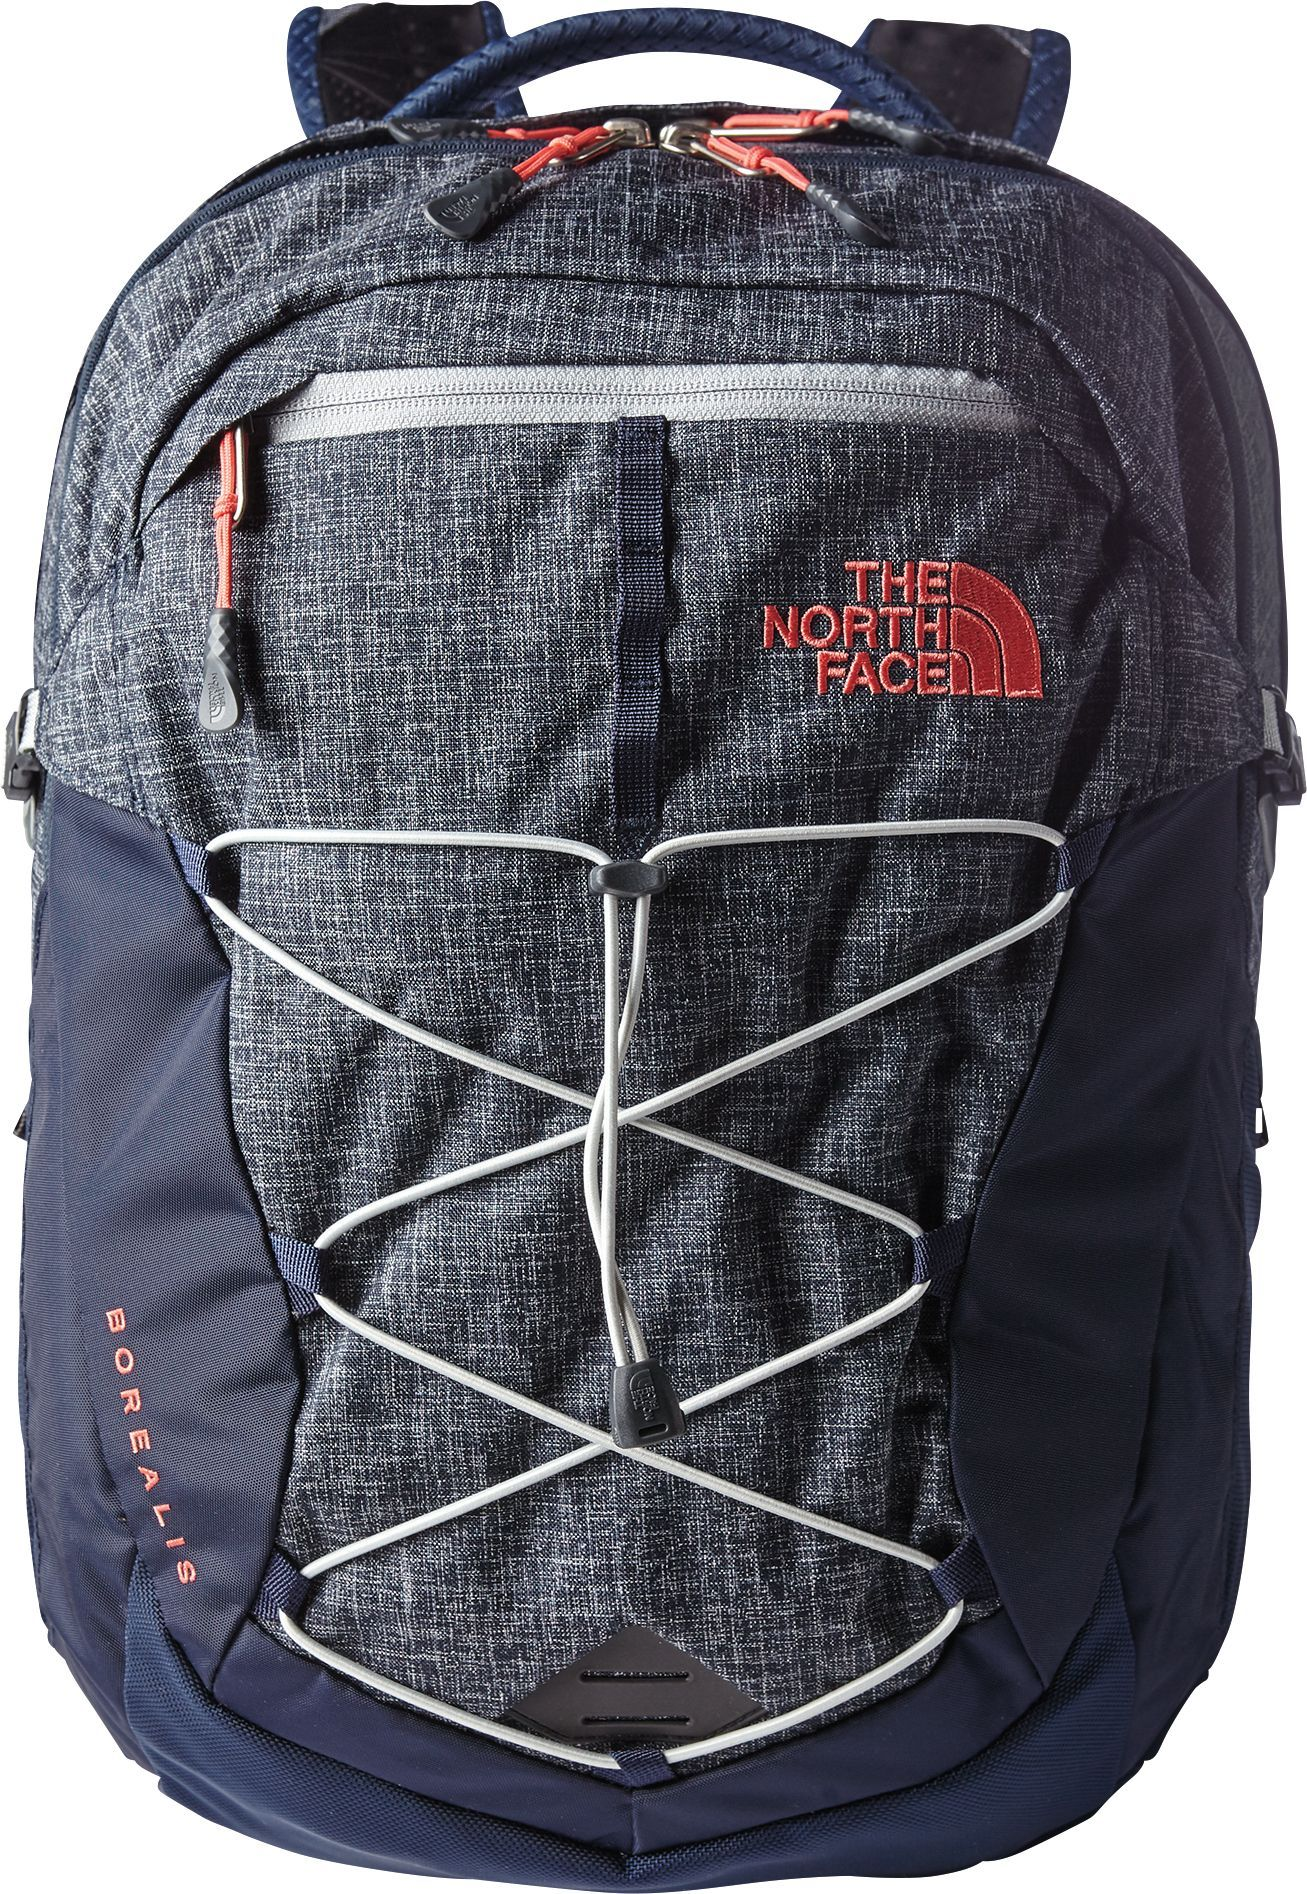 a03ec6560 The North Face Women's Borealis Backpack | DICK'S Sporting ...